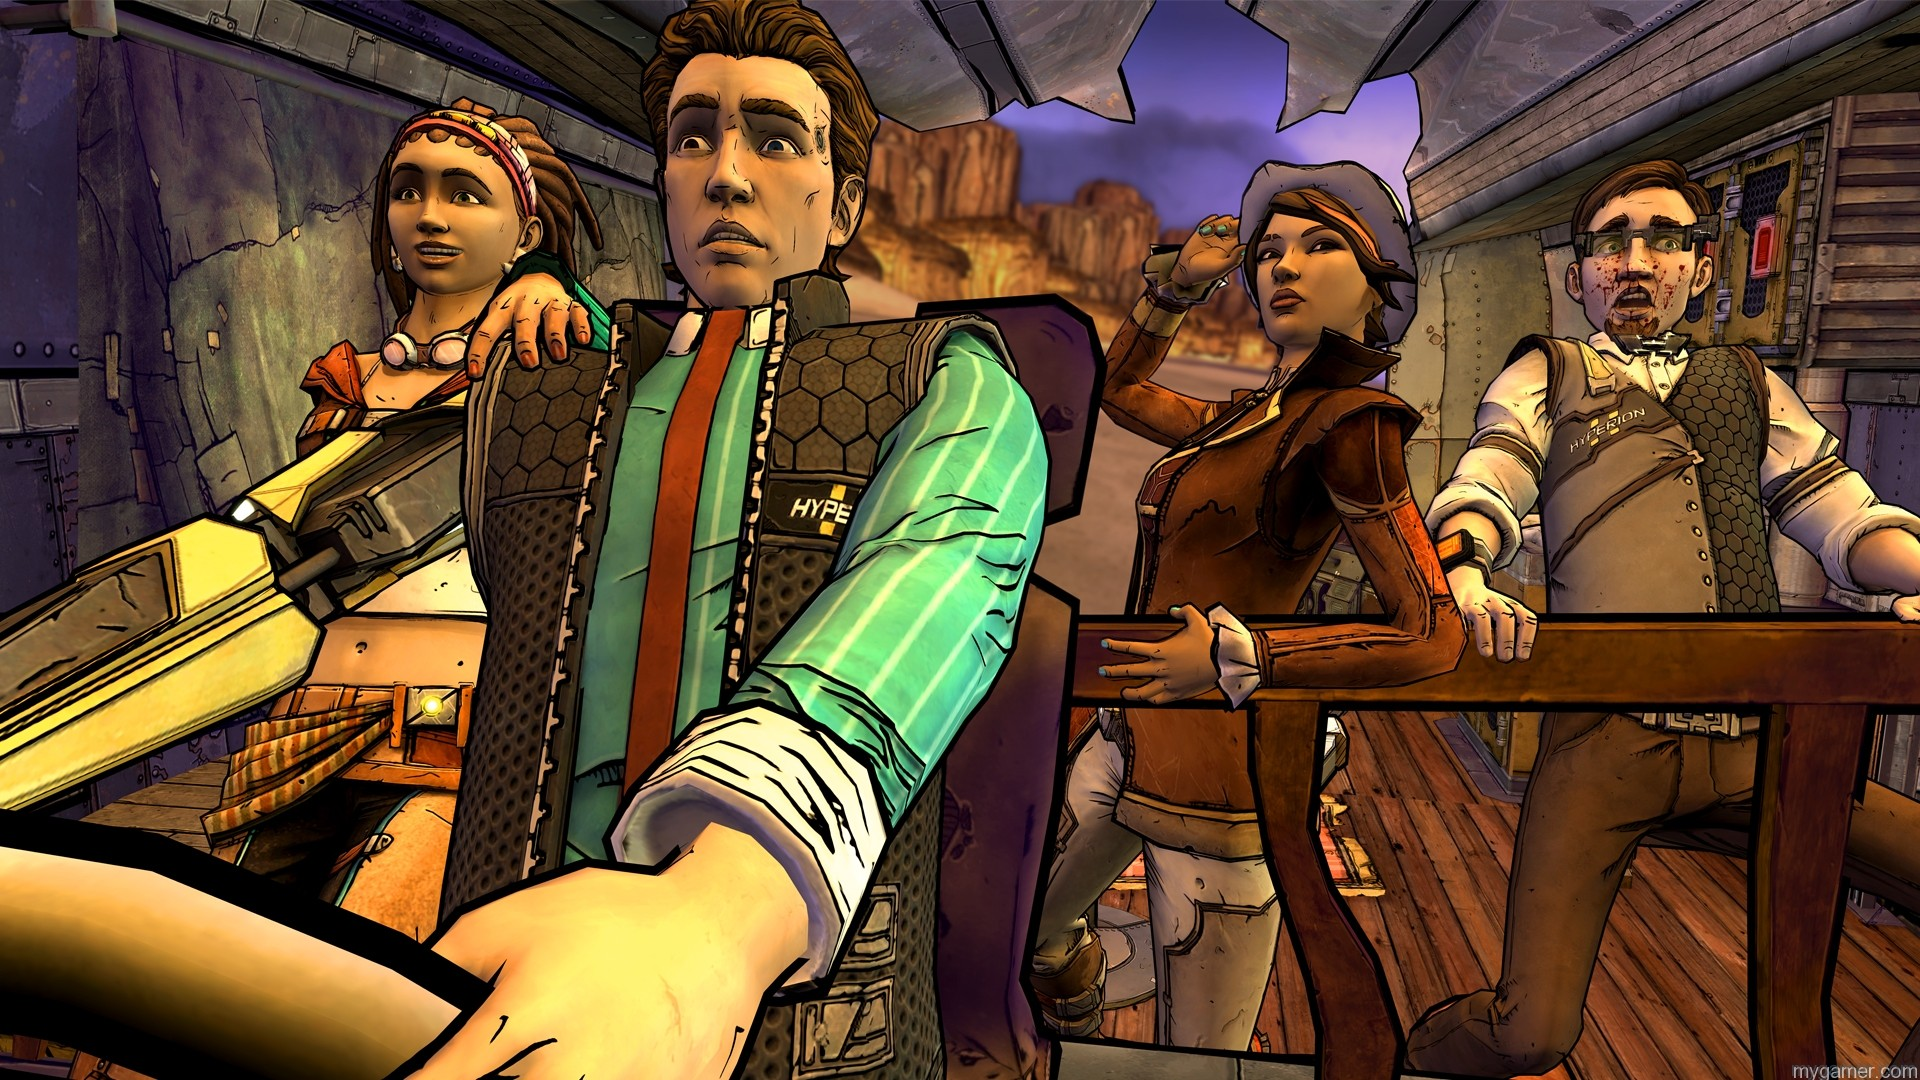 Tales from the Borderlands pic Tales from the Borderlands Season 1 Review Tales from the Borderlands Season 1 Review (with Streams) Tales from the Borderlands pic